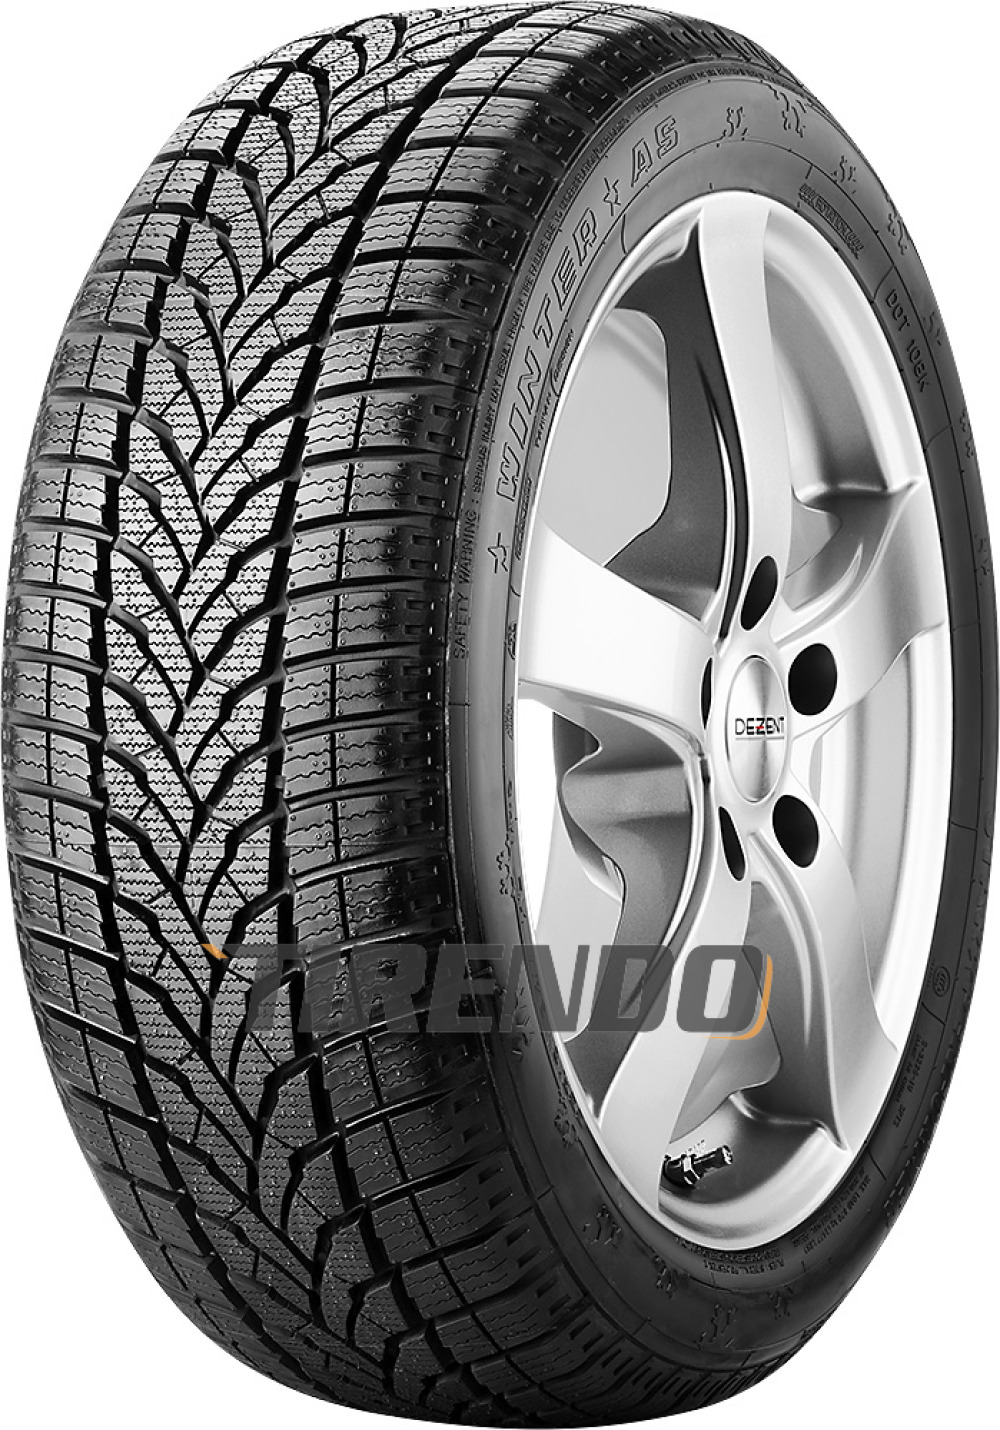 Star Performer SPTS AS ( 155/70 R13 75T )